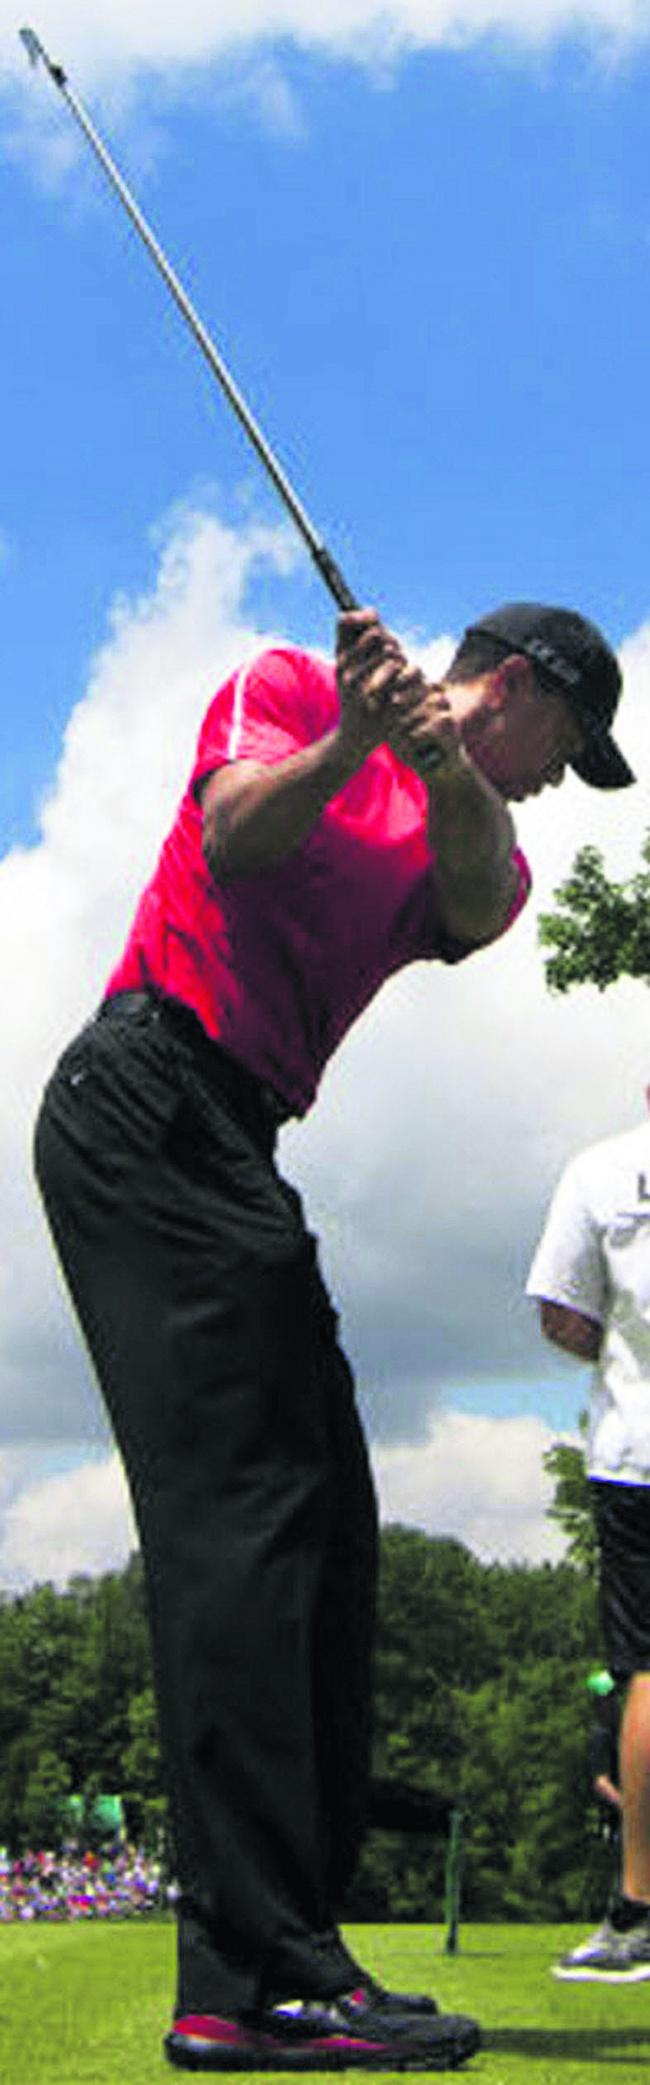 The top players, such as world number one Tiger Woods, all have a pre-shot routine